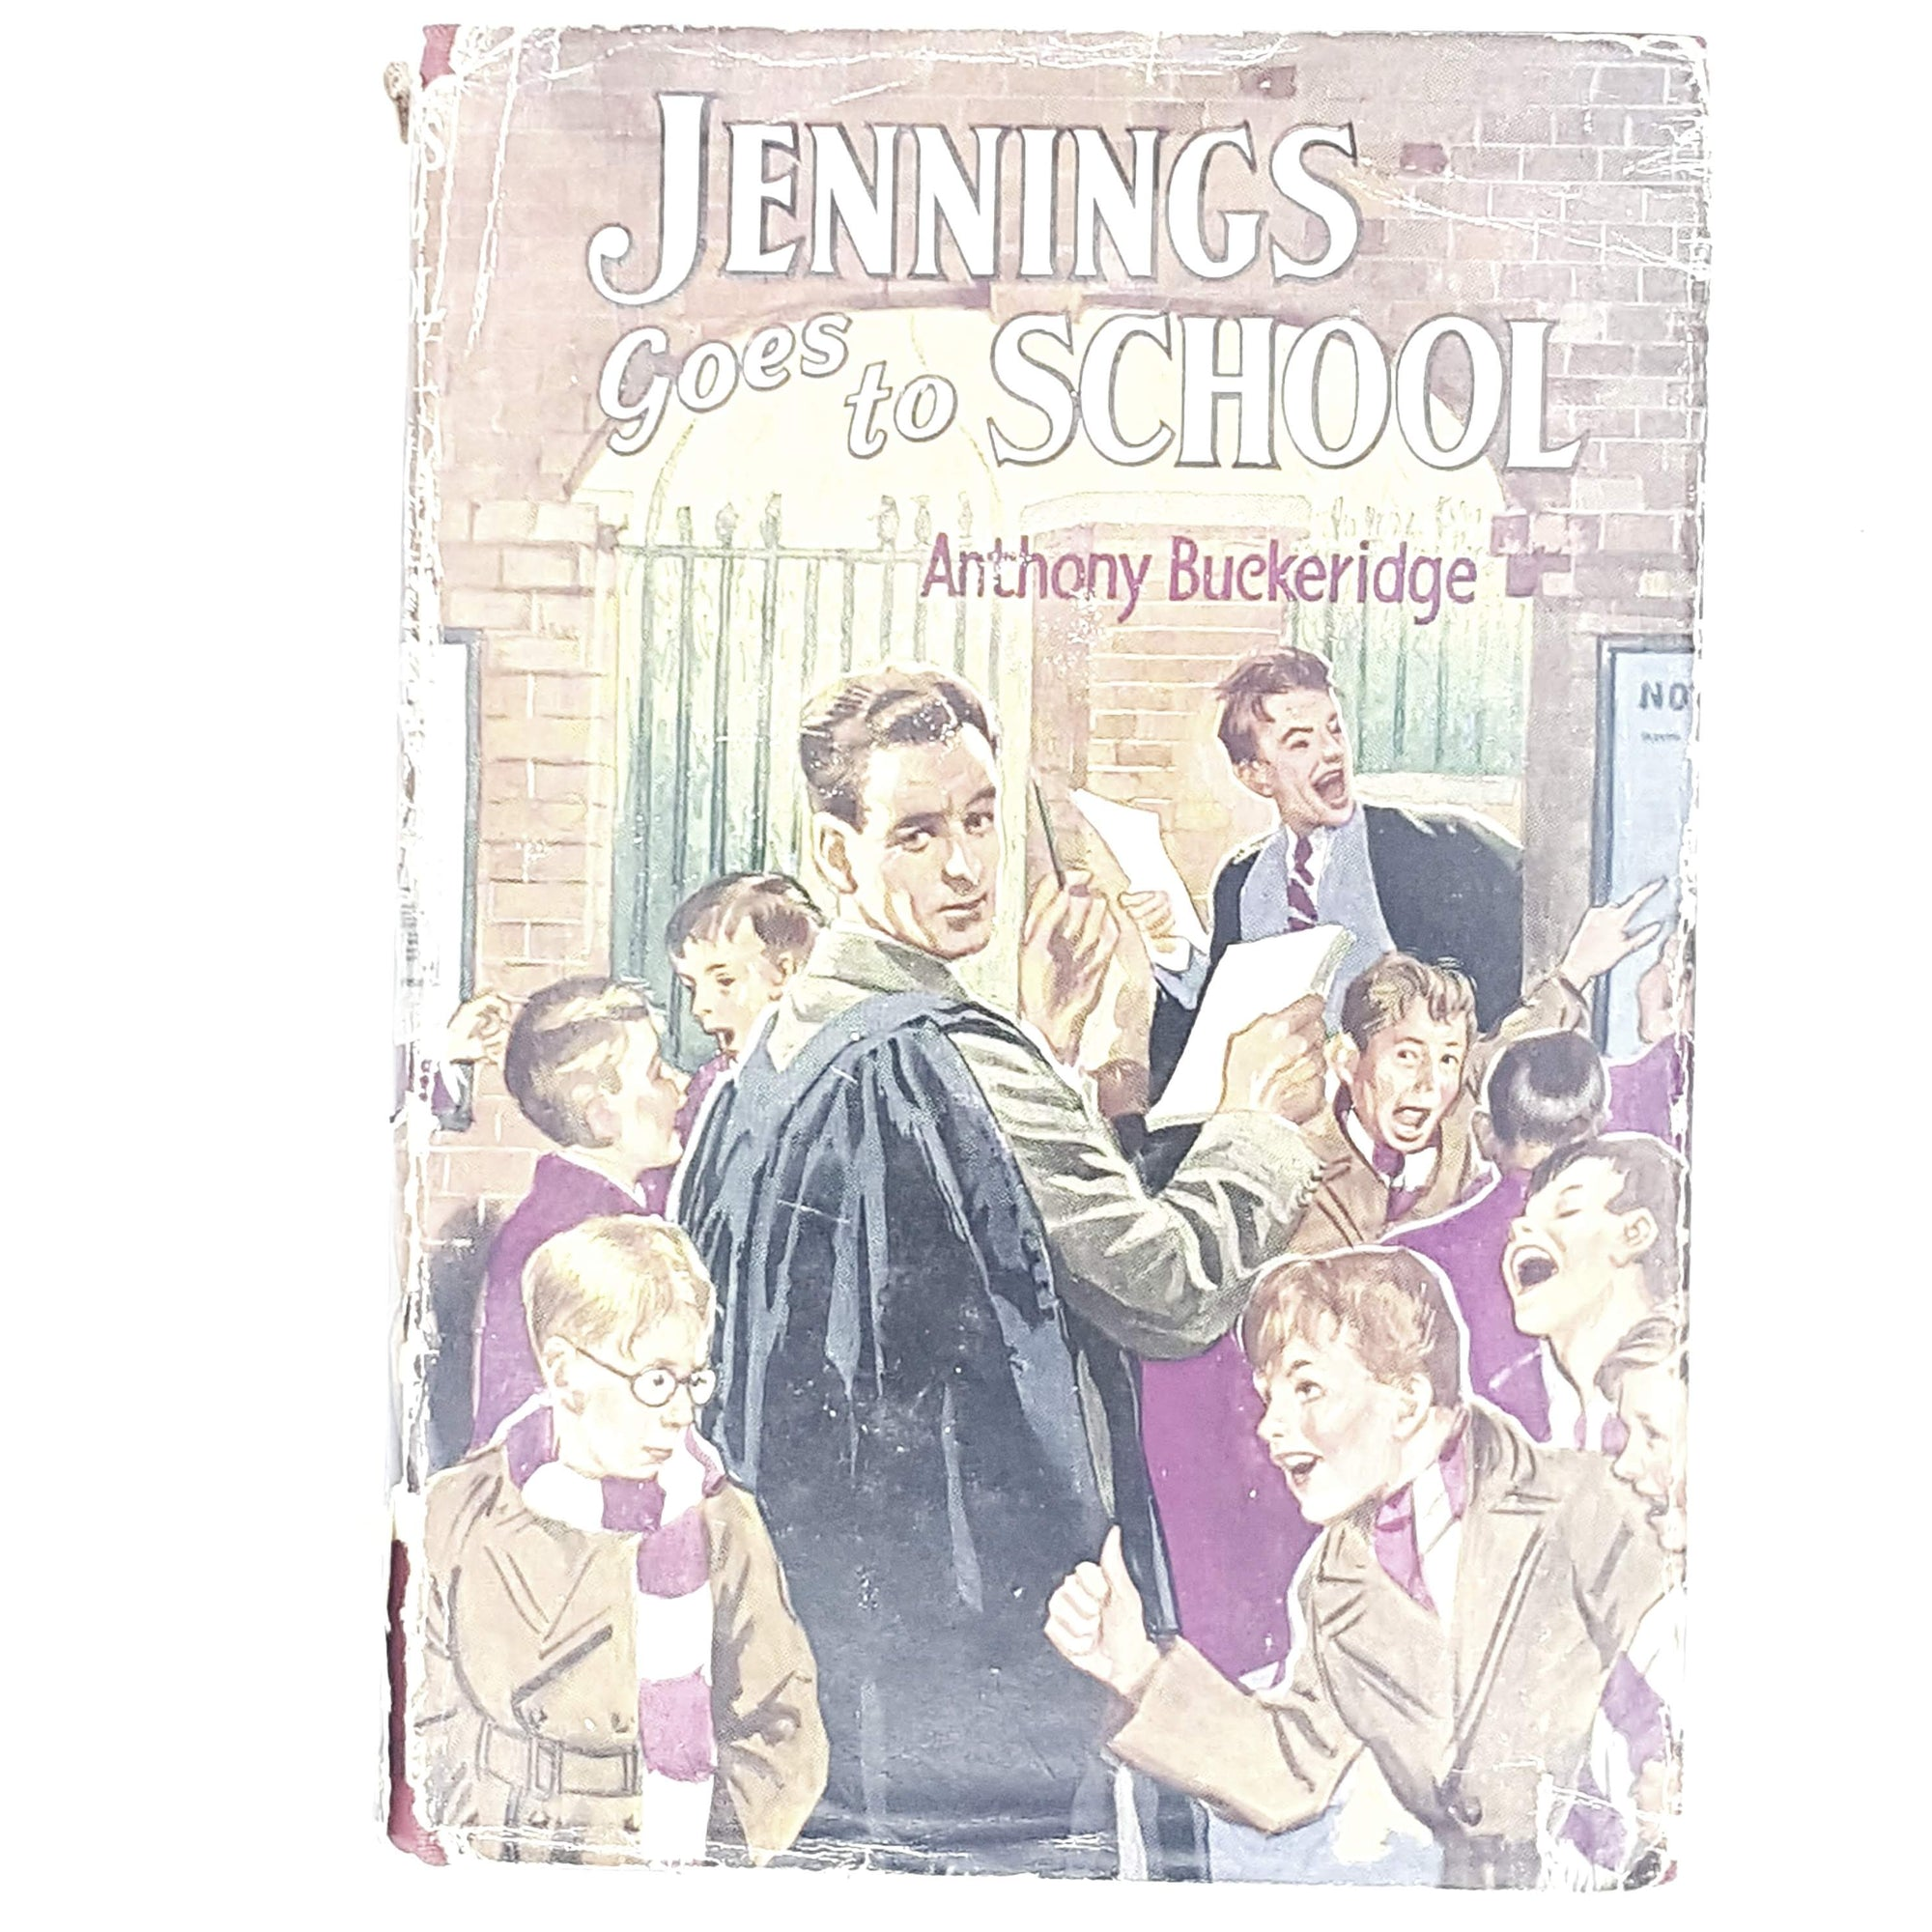 jennings-goes-to-school-by-anthony-buckeridge-1951-country-house-library